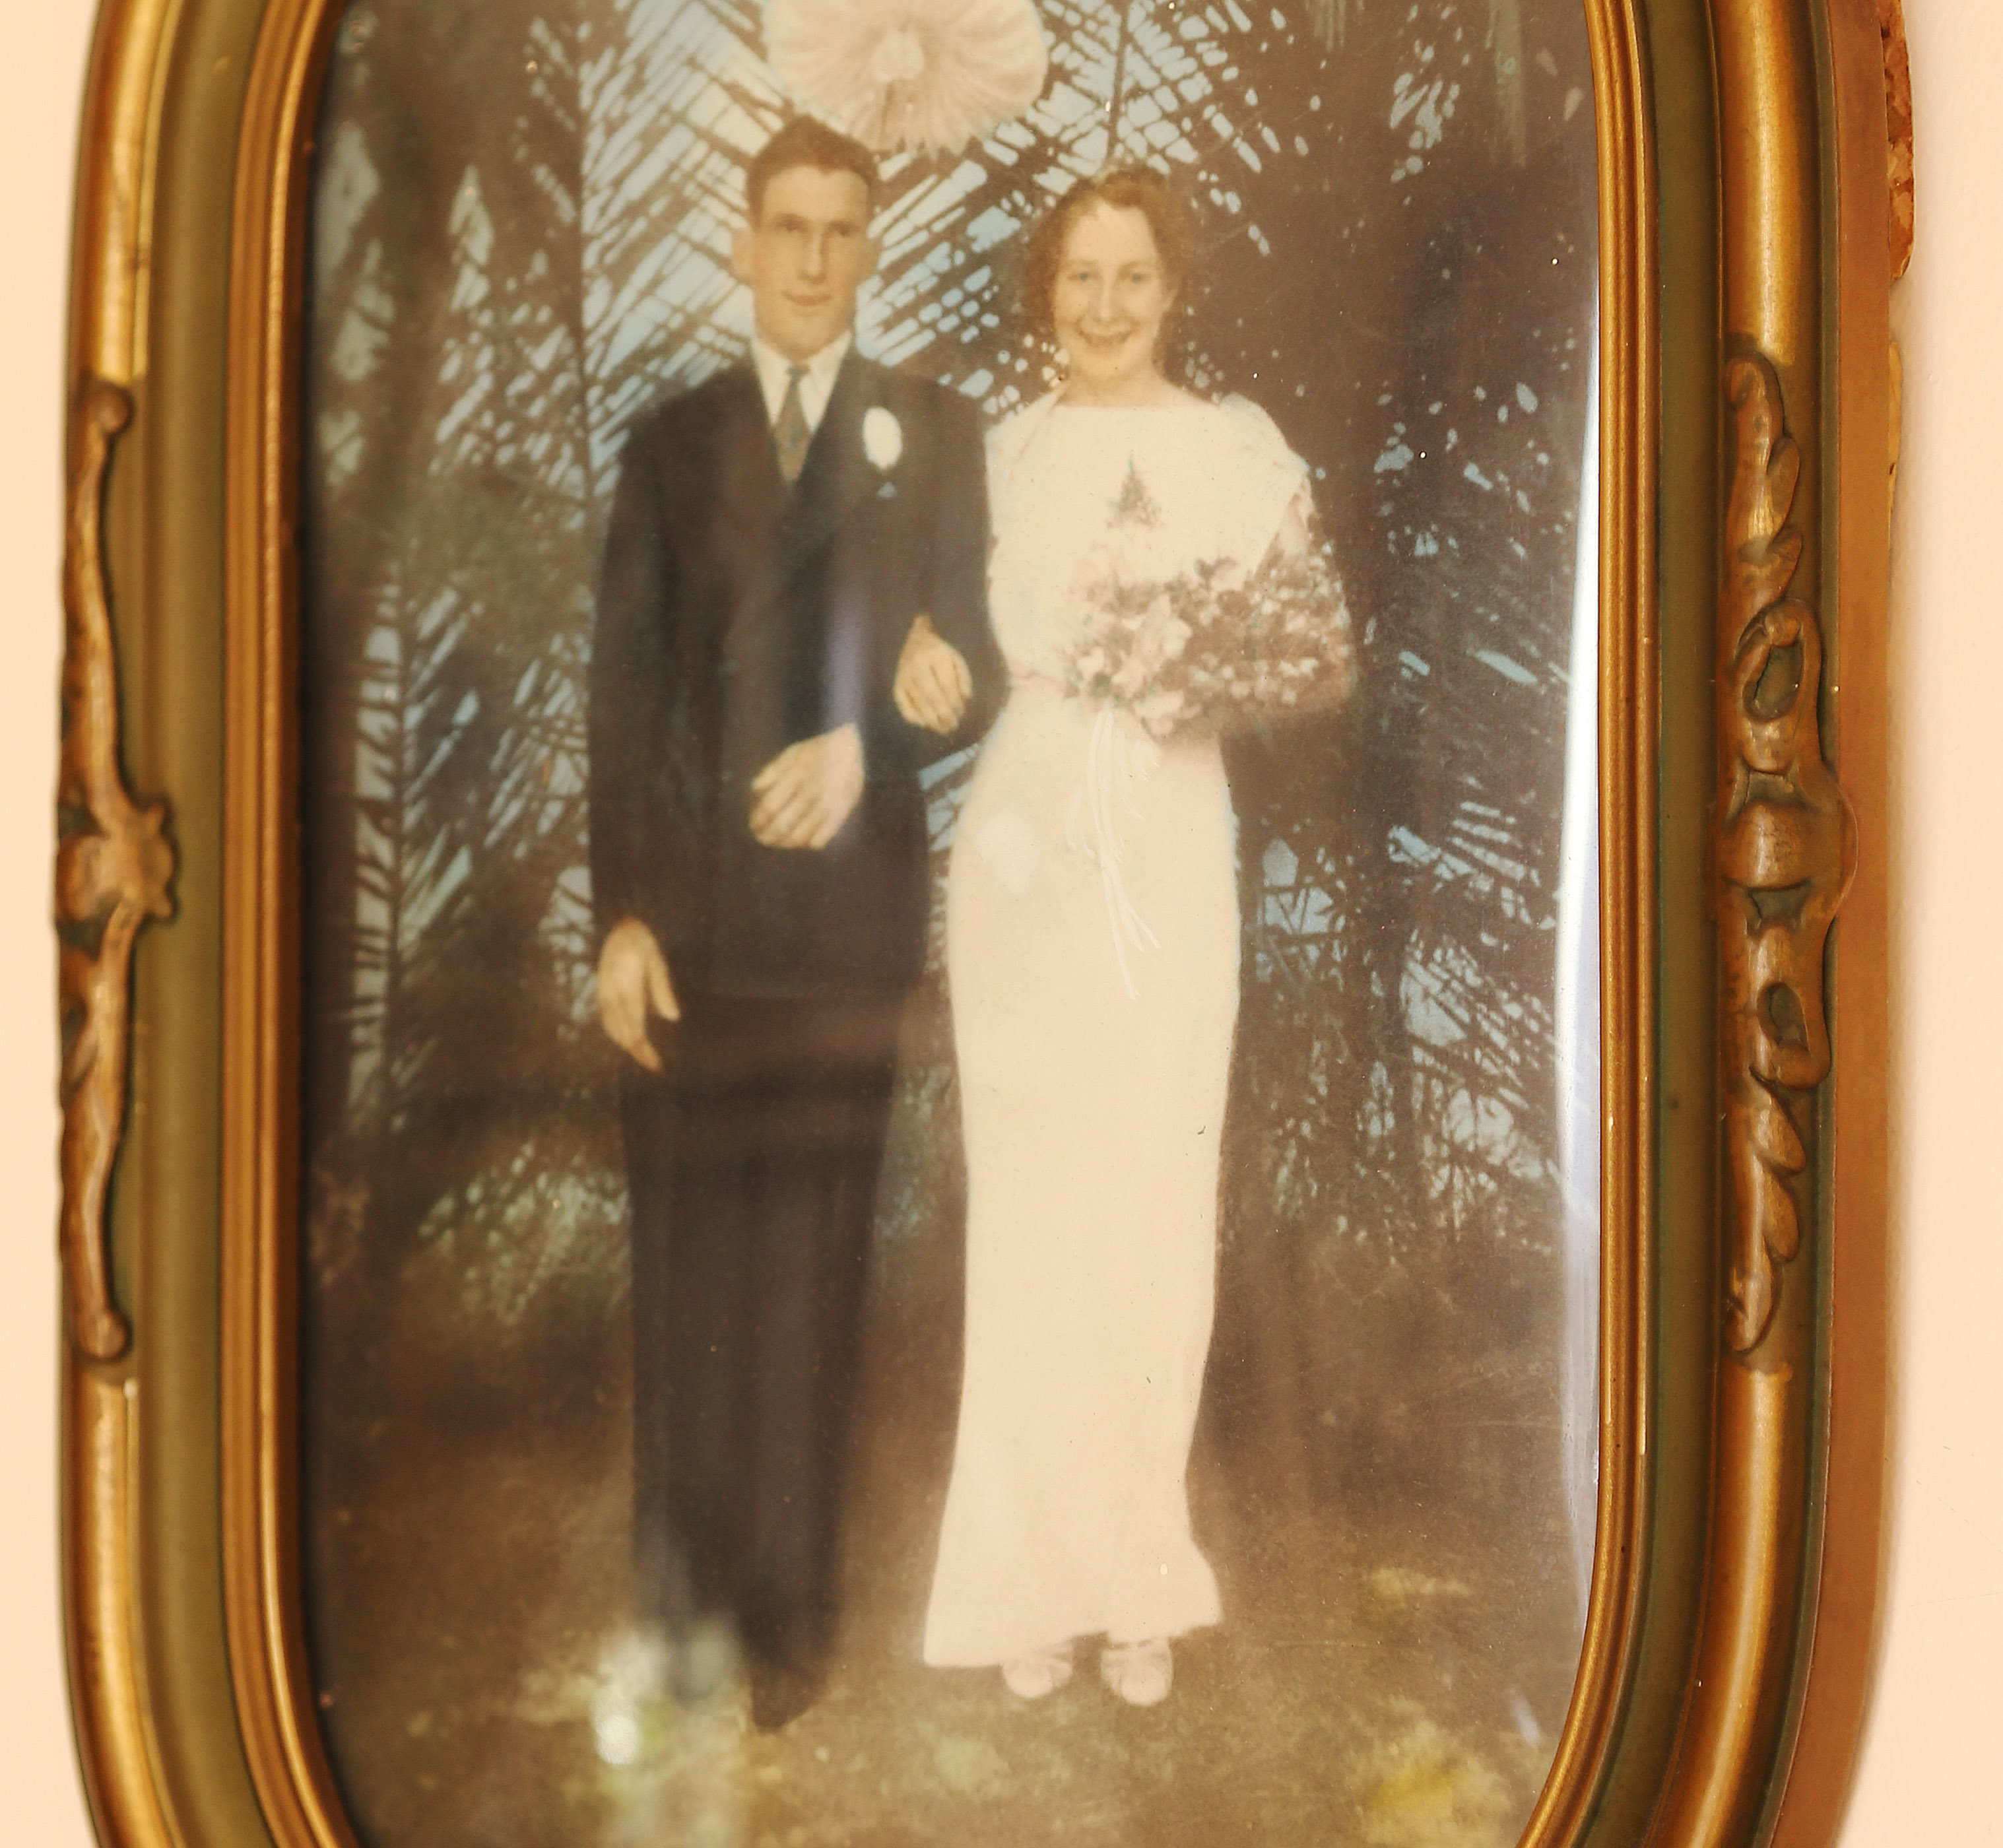 A wedding photo of Nellie Leighton and her husband displayed at her home in Salt Lake City on Tuesday, Jan. 22, 2019. Leighton will celebrate her 100th birthday in February.